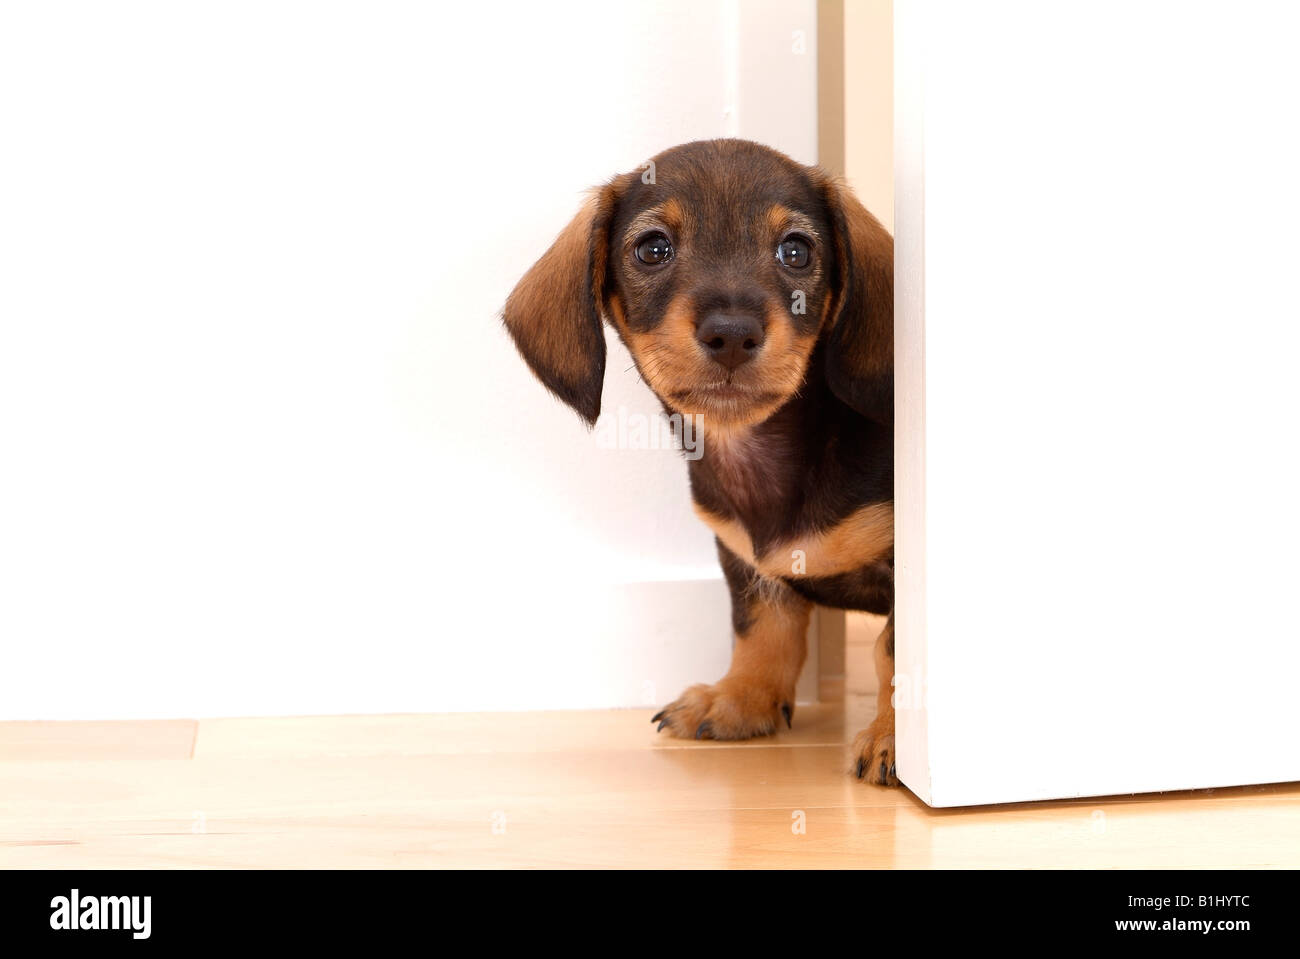 Close-up of a dachshund puppy peeking from a door  sc 1 st  Alamy & Close-up of a dachshund puppy peeking from a door Stock Photo ...